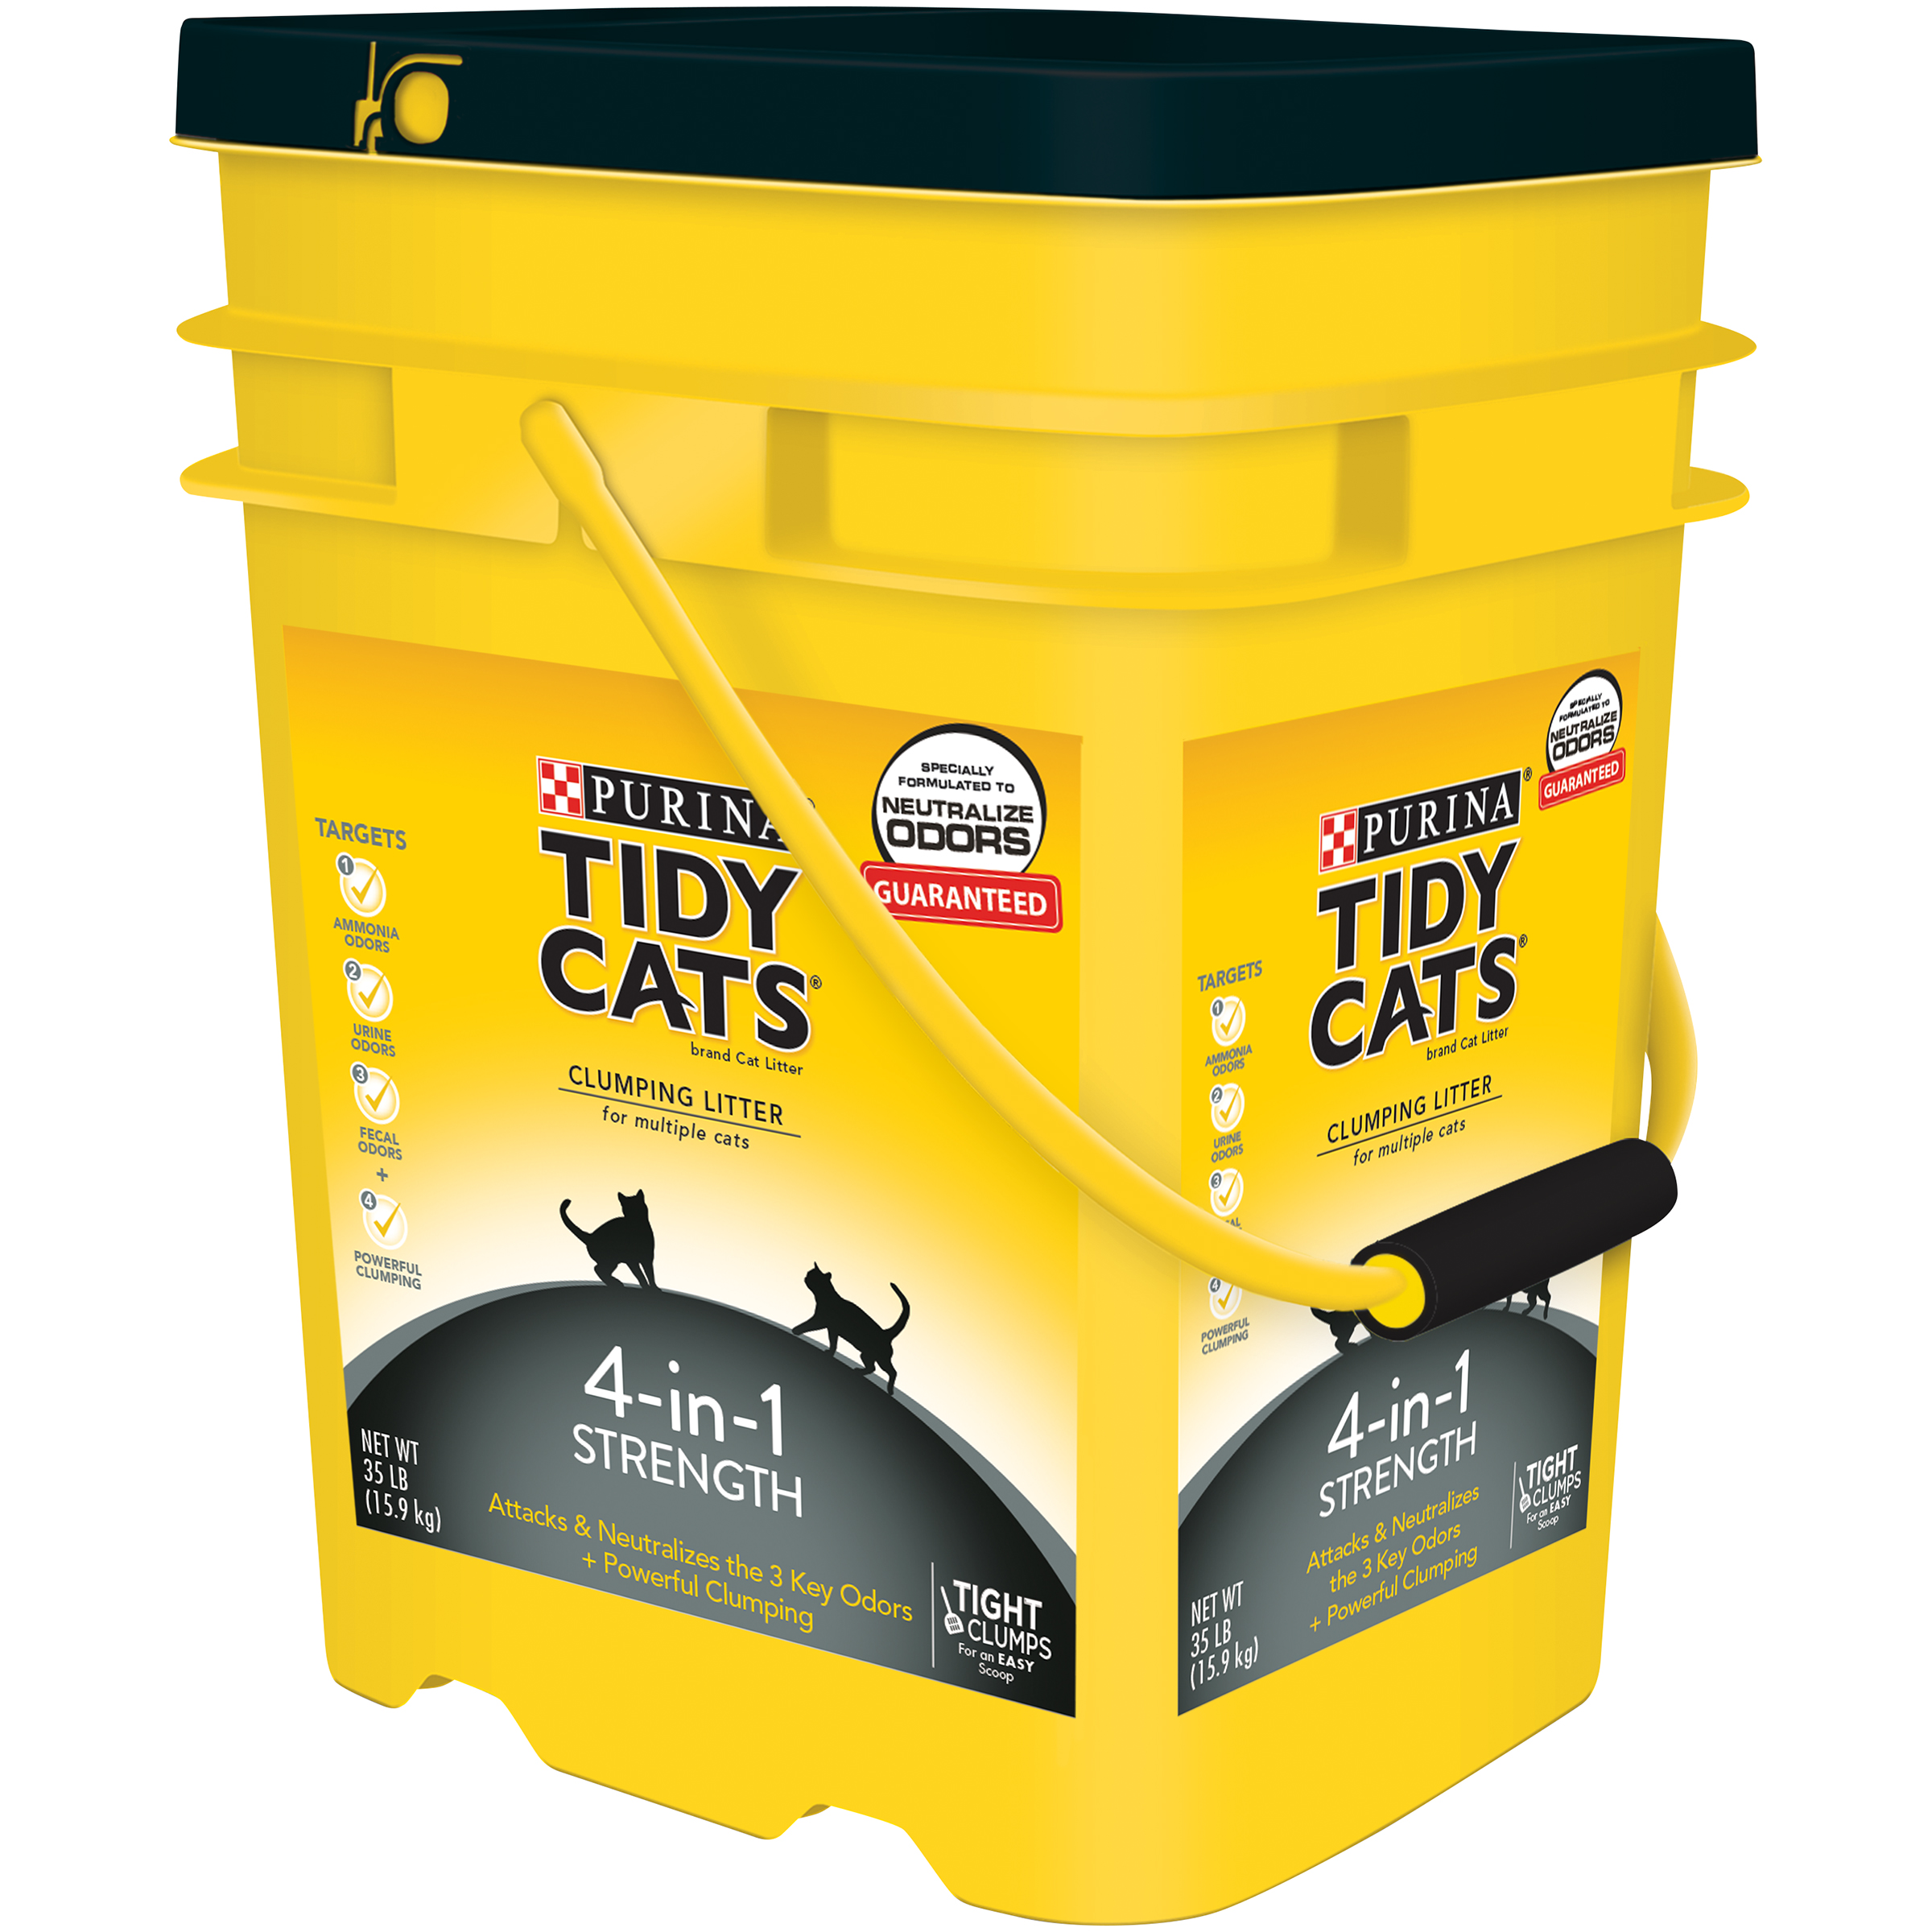 Purina Tidy Cats Clumping Litter 4 In 1 Strength For